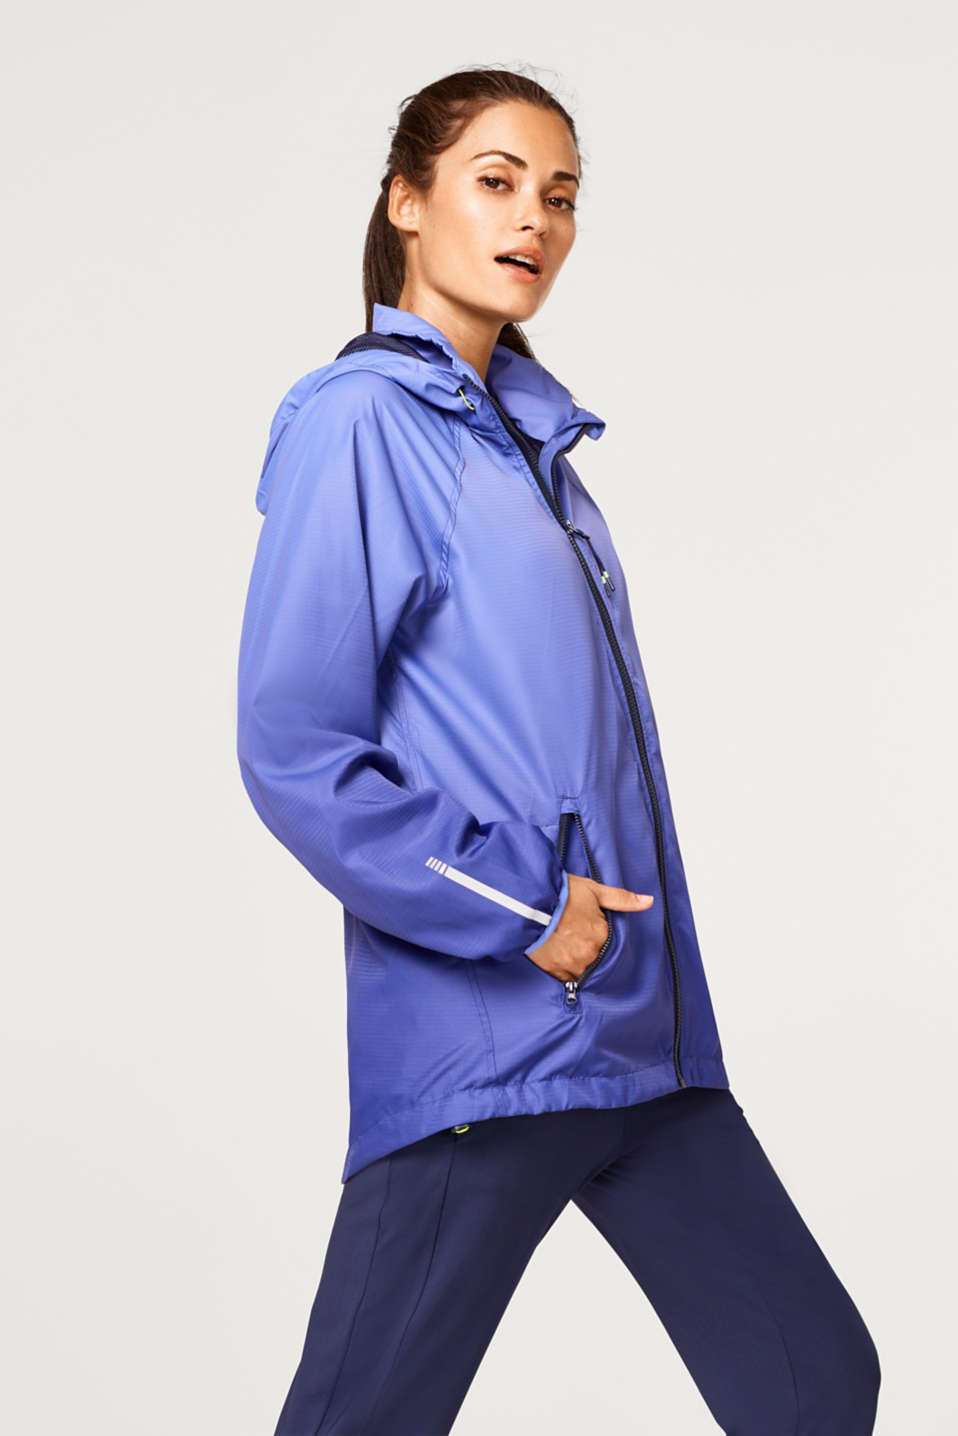 Esprit - Lightweight active jacket with mesh lining